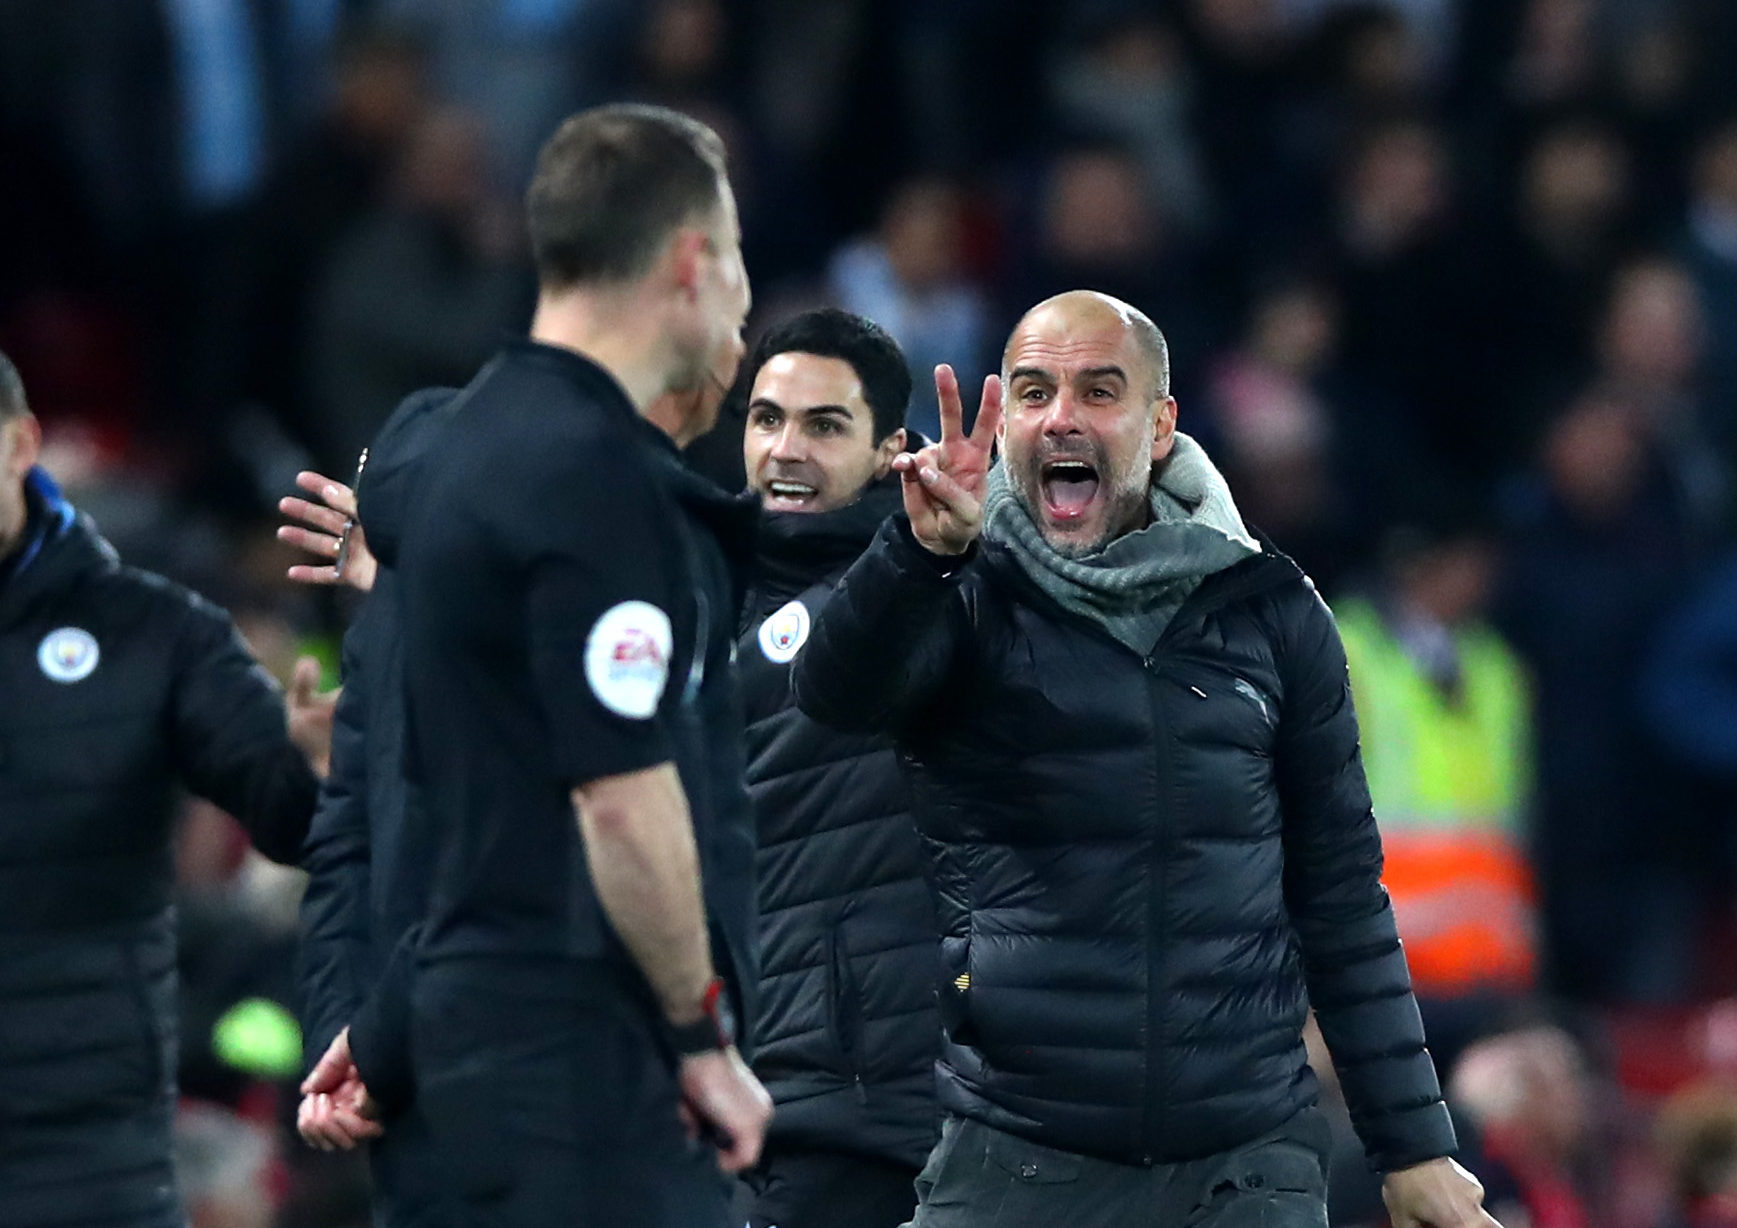 Manchester City Manager Pep Guardiola reacts during the Premier League match between Liverpool FC and Manchester City at Anfield.